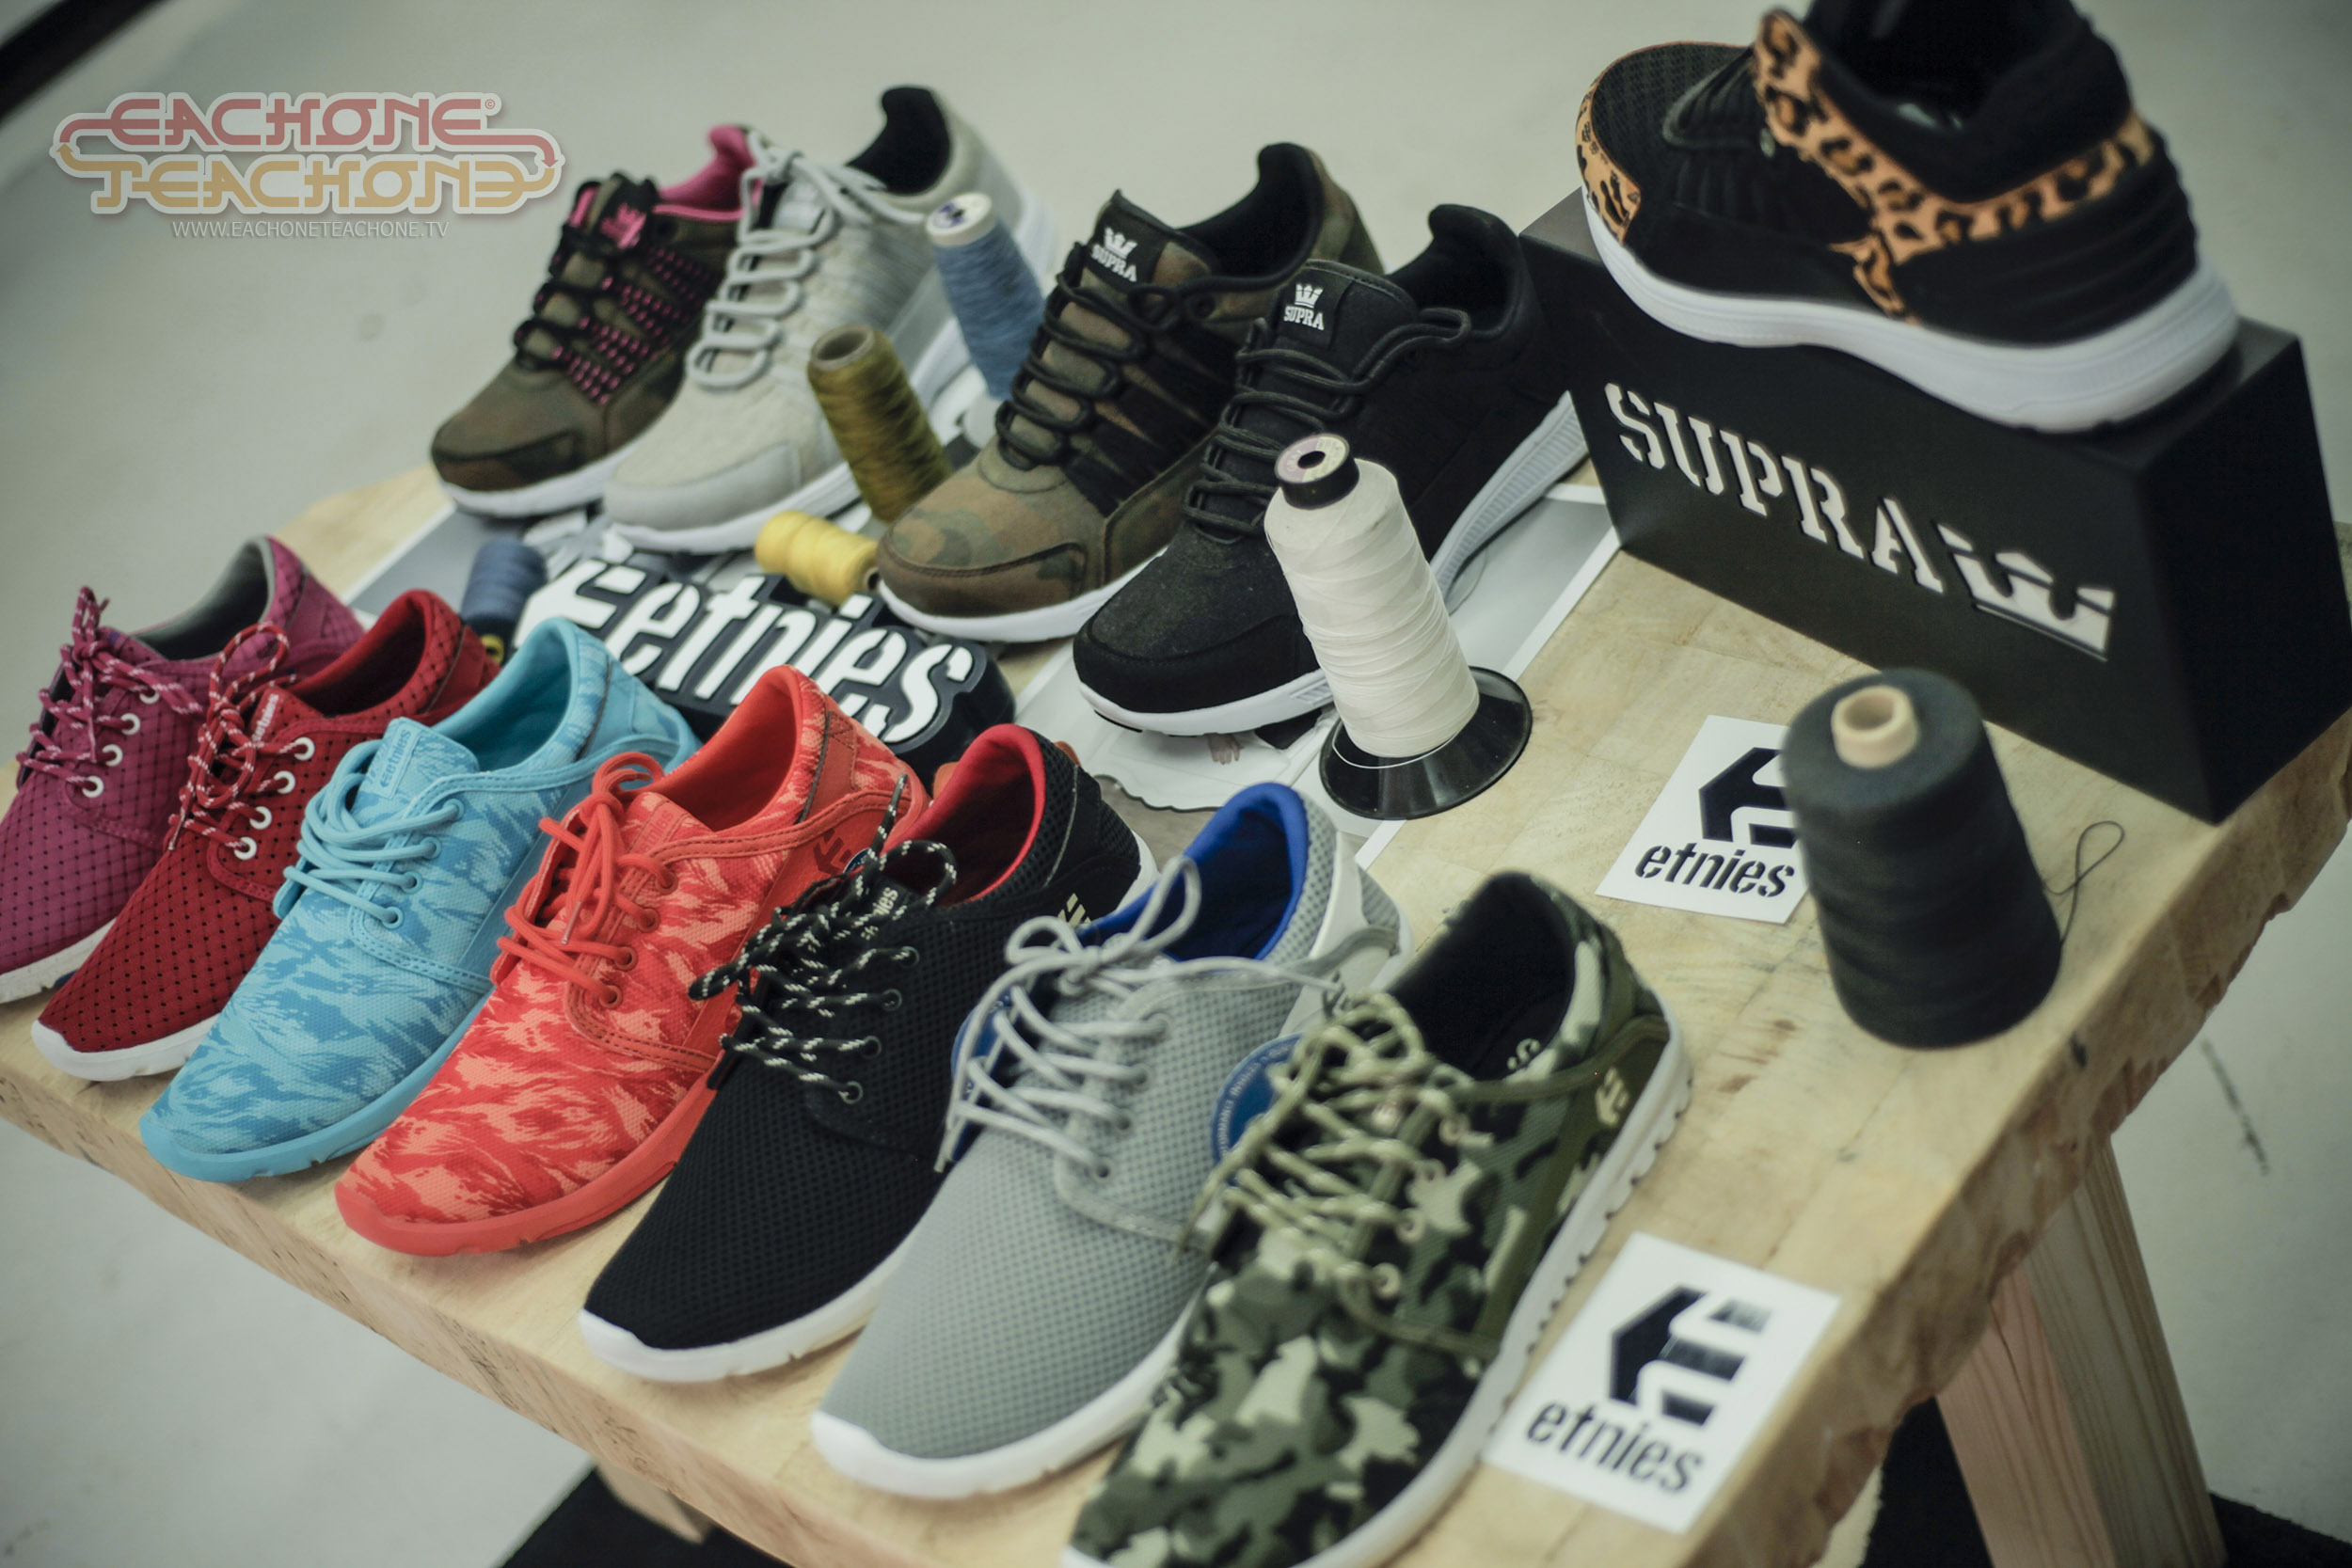 Street Supply Footwear Store Warsaw, Poland | Facebook